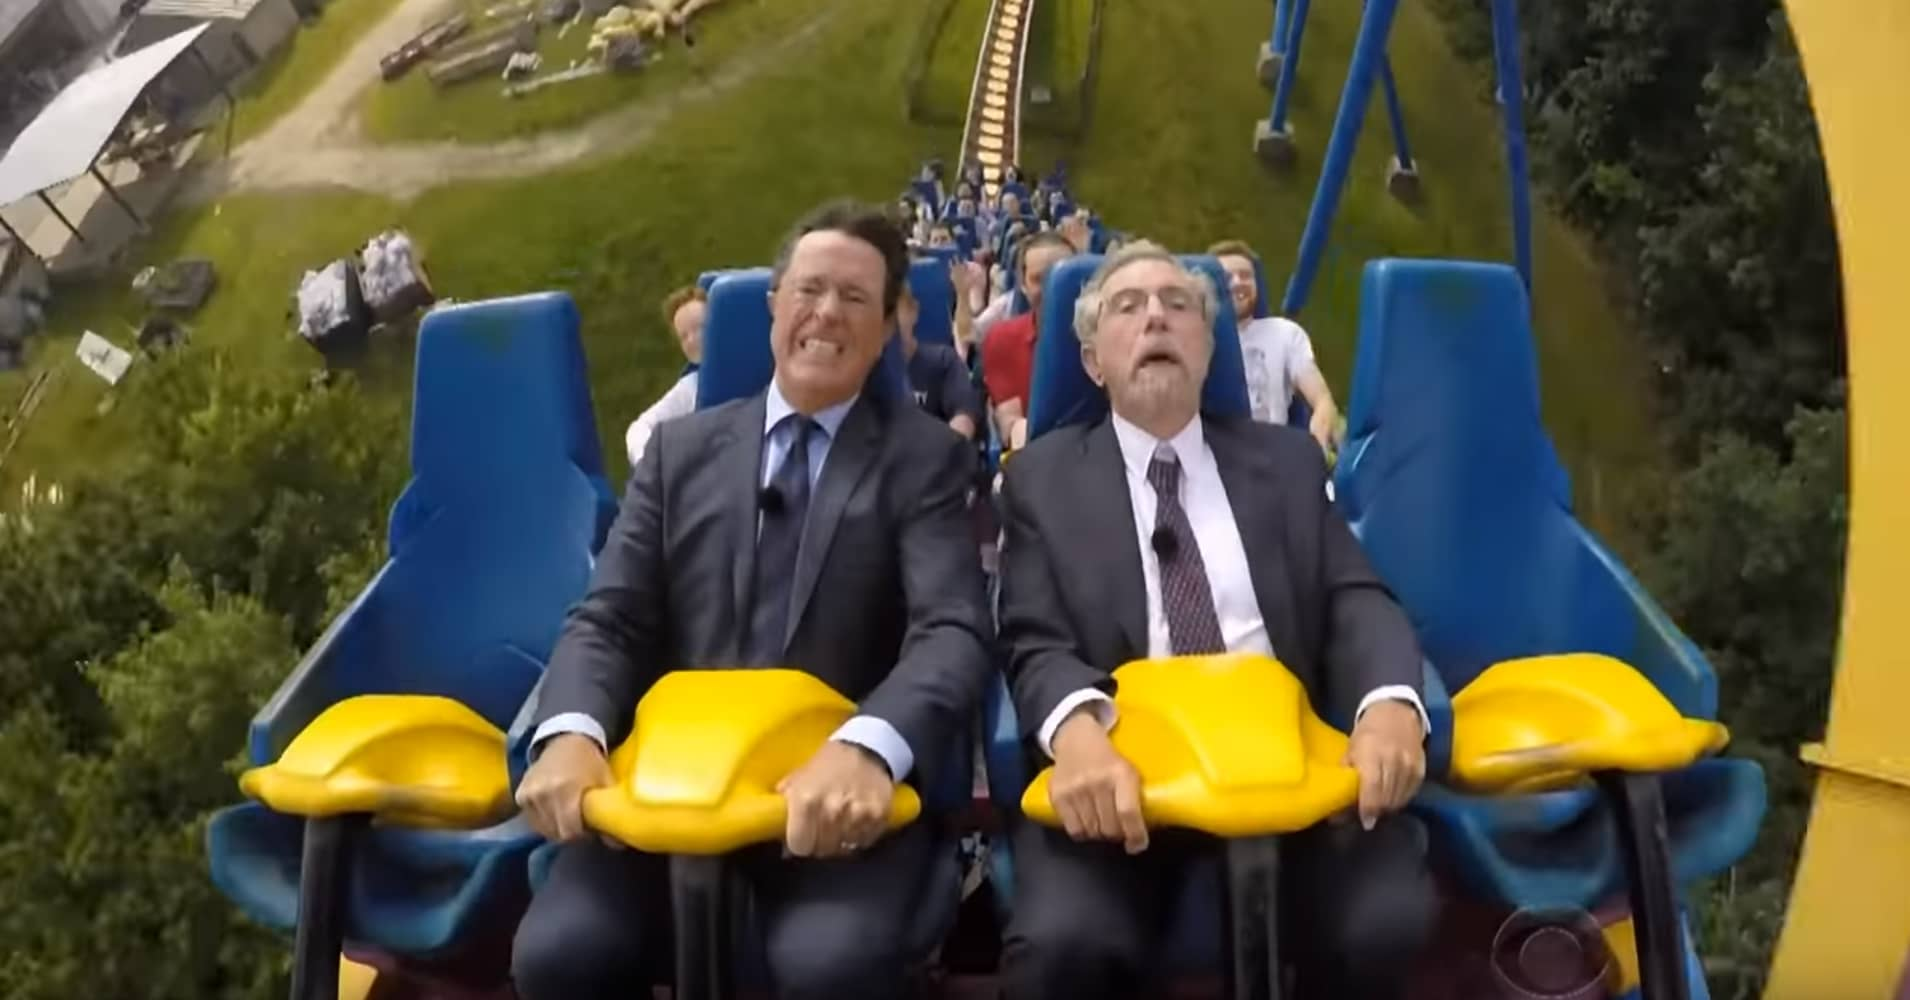 Economist Paul Krugman taught Stephen Colbert macroeconomics on a roller coaster